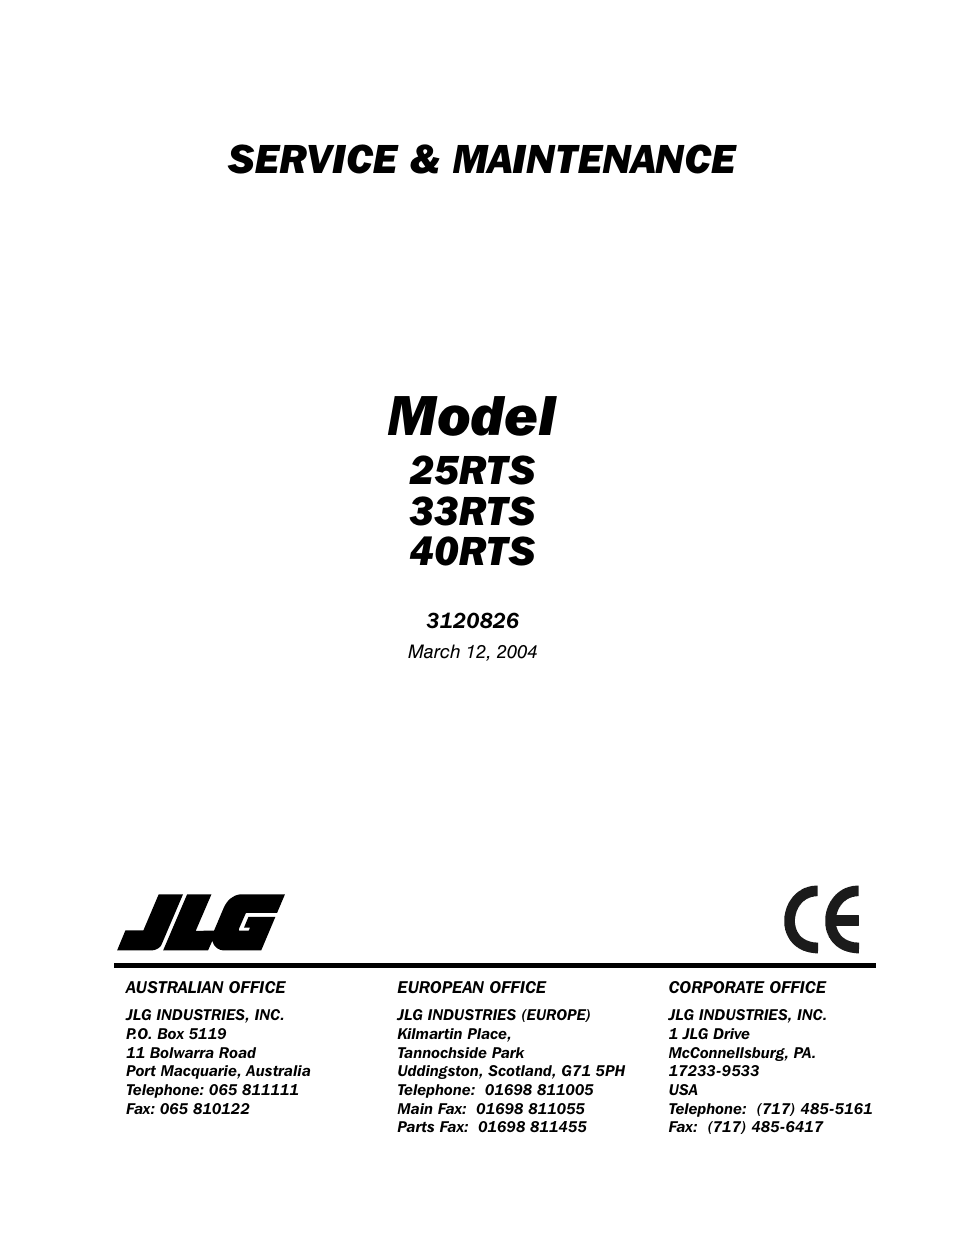 jlg rts service manual user manual pages also for rts jlg 40rts service manual user manual 84 pages also for 33rts service manual 25rts service manual